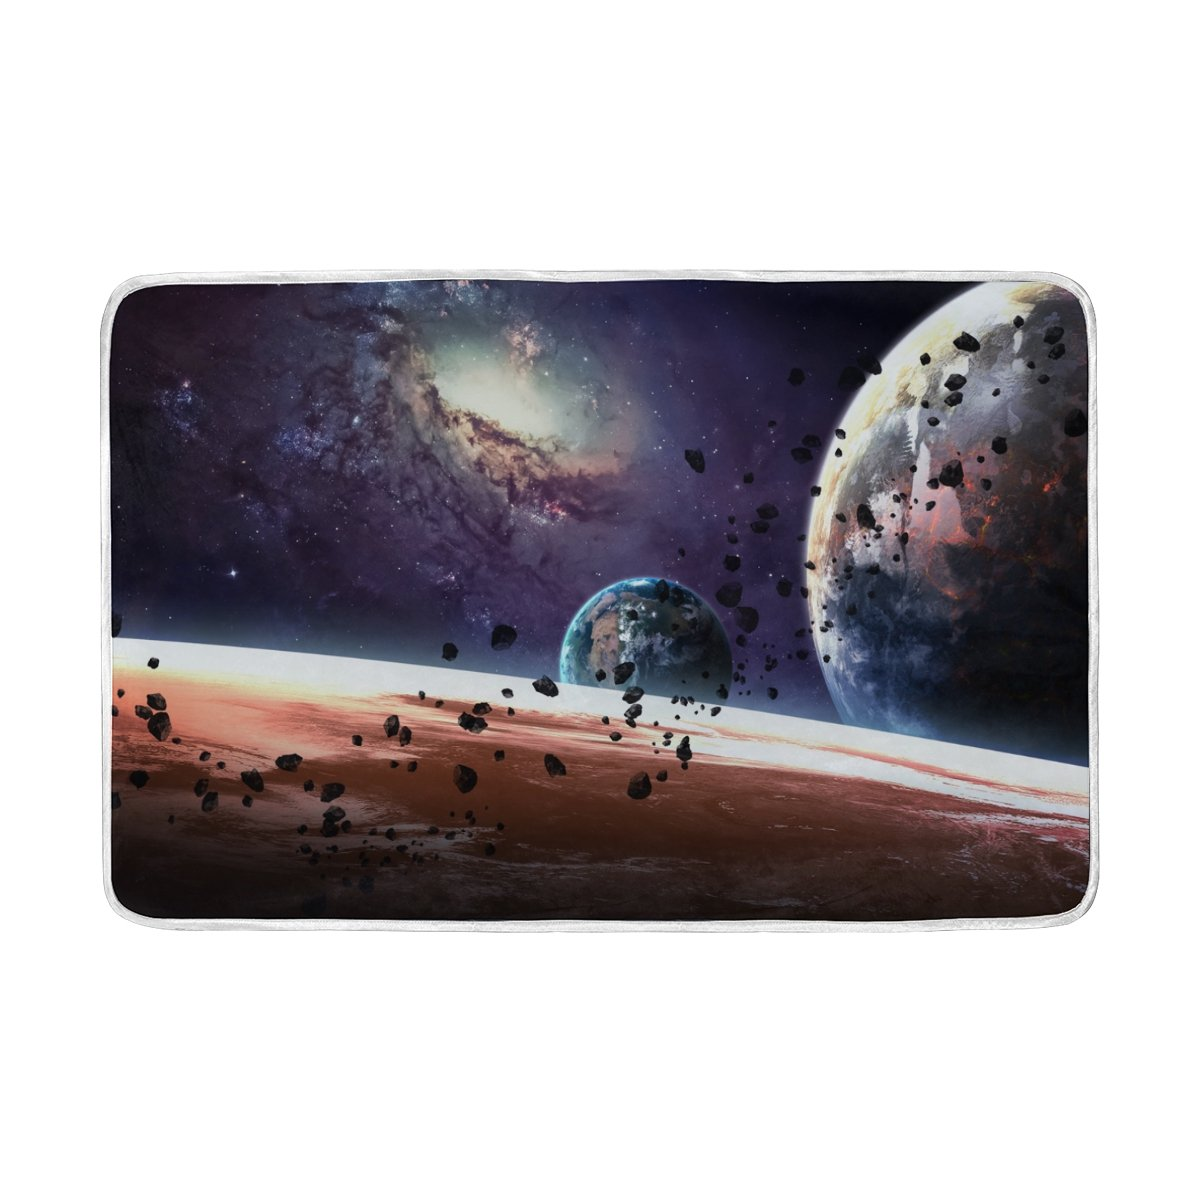 ALAZA Solar System Starry Sky Galaxy Space Nebula Planet Plush Throws Siesta Camping Travel Fleece Blankets Lightweight Bed Sofe Size 60x90inches